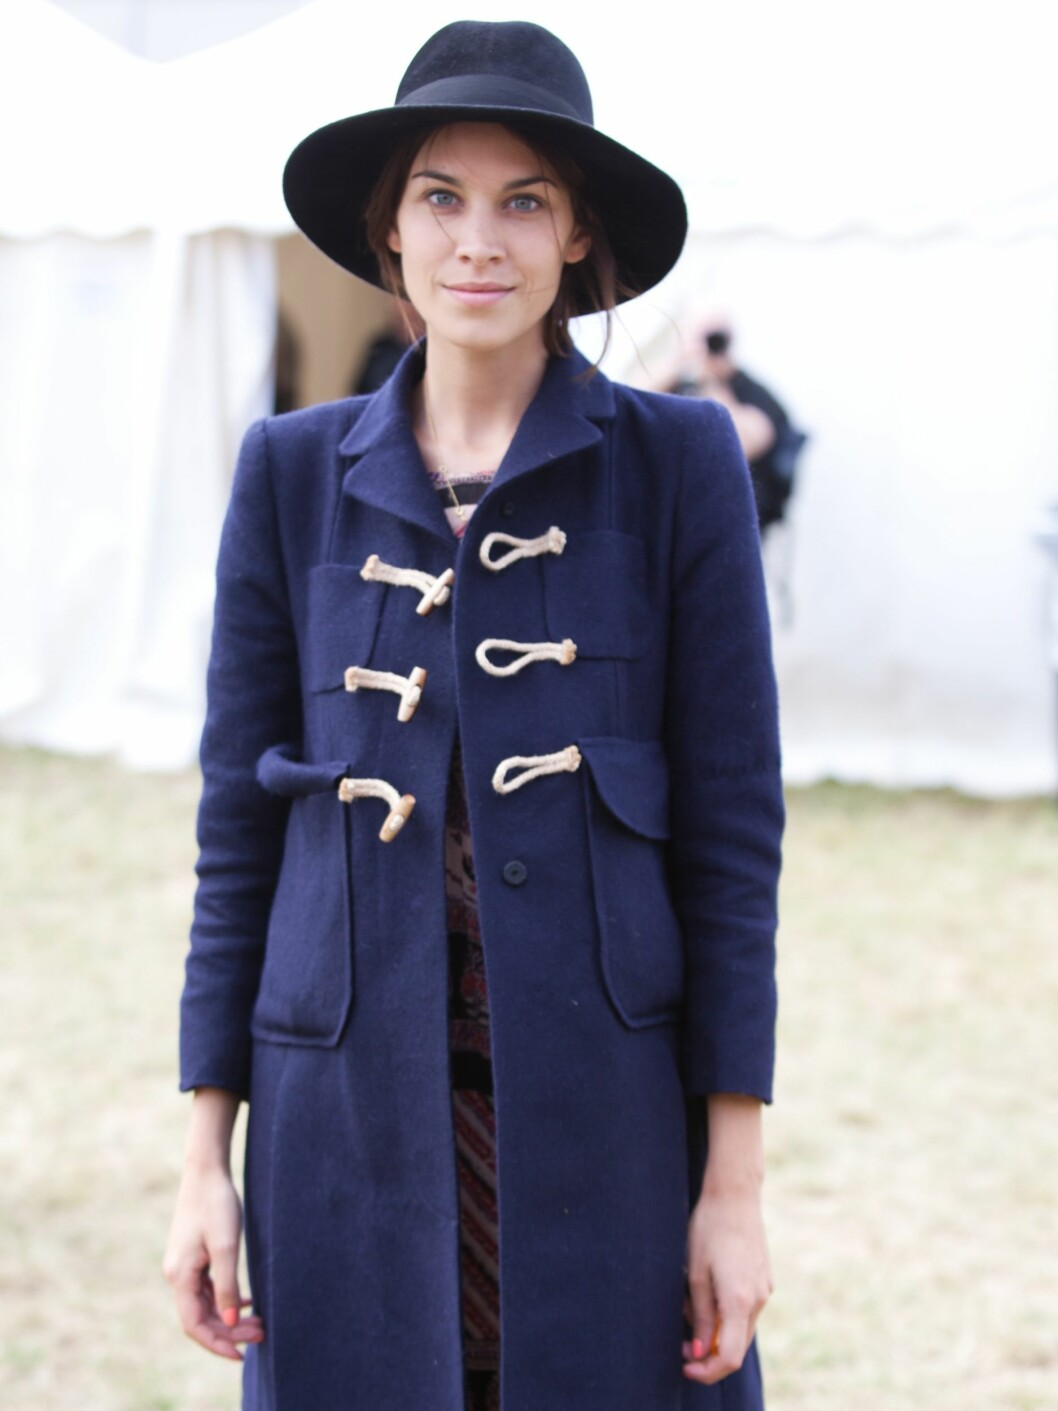 PADDOCK WOOD, UNITED KINGDOM - JULY 02: Alexa Chung attends the Hop Farm Music Festival on July 2, 2011 in Paddock Wood, United Kingdom. (Photo by Kate Booker/Redferns) By: All Over Press / Getty Images CODE: GE01X8 Foto: All Over Press